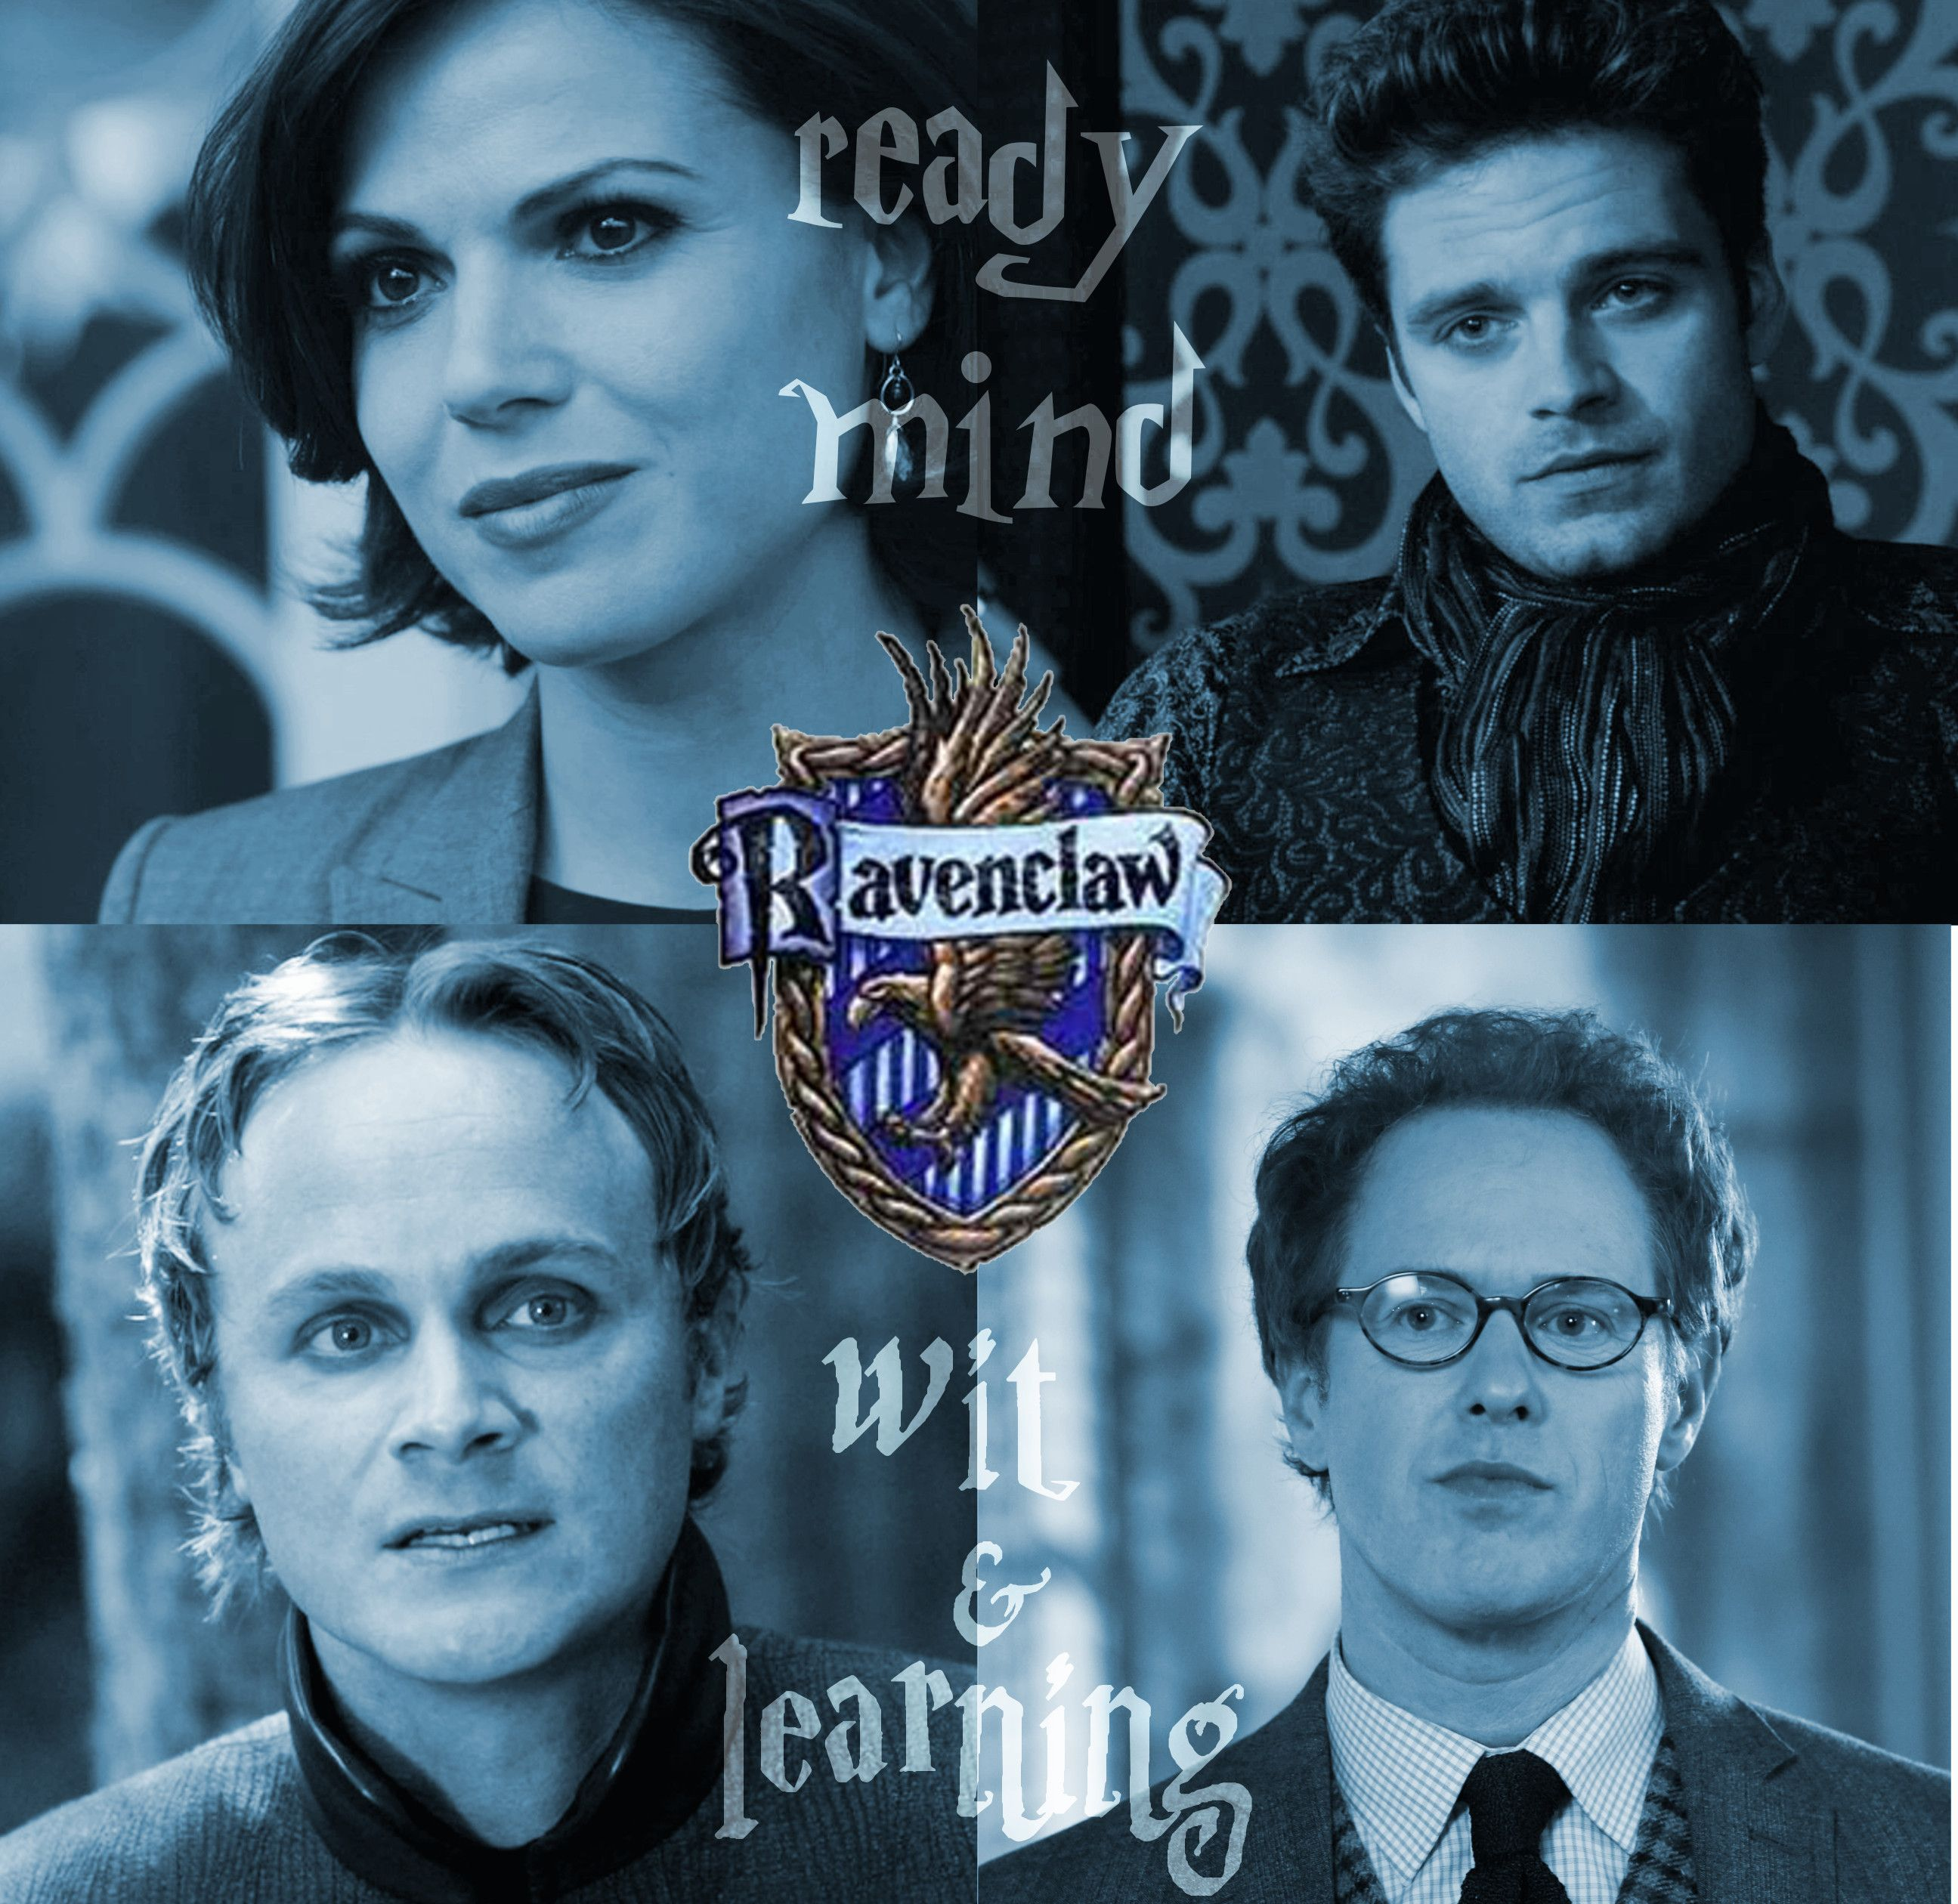 The Ravenclaws Ouat Harrypotter Once Upon A Time Funny Once Up A Time Once Upon A Time